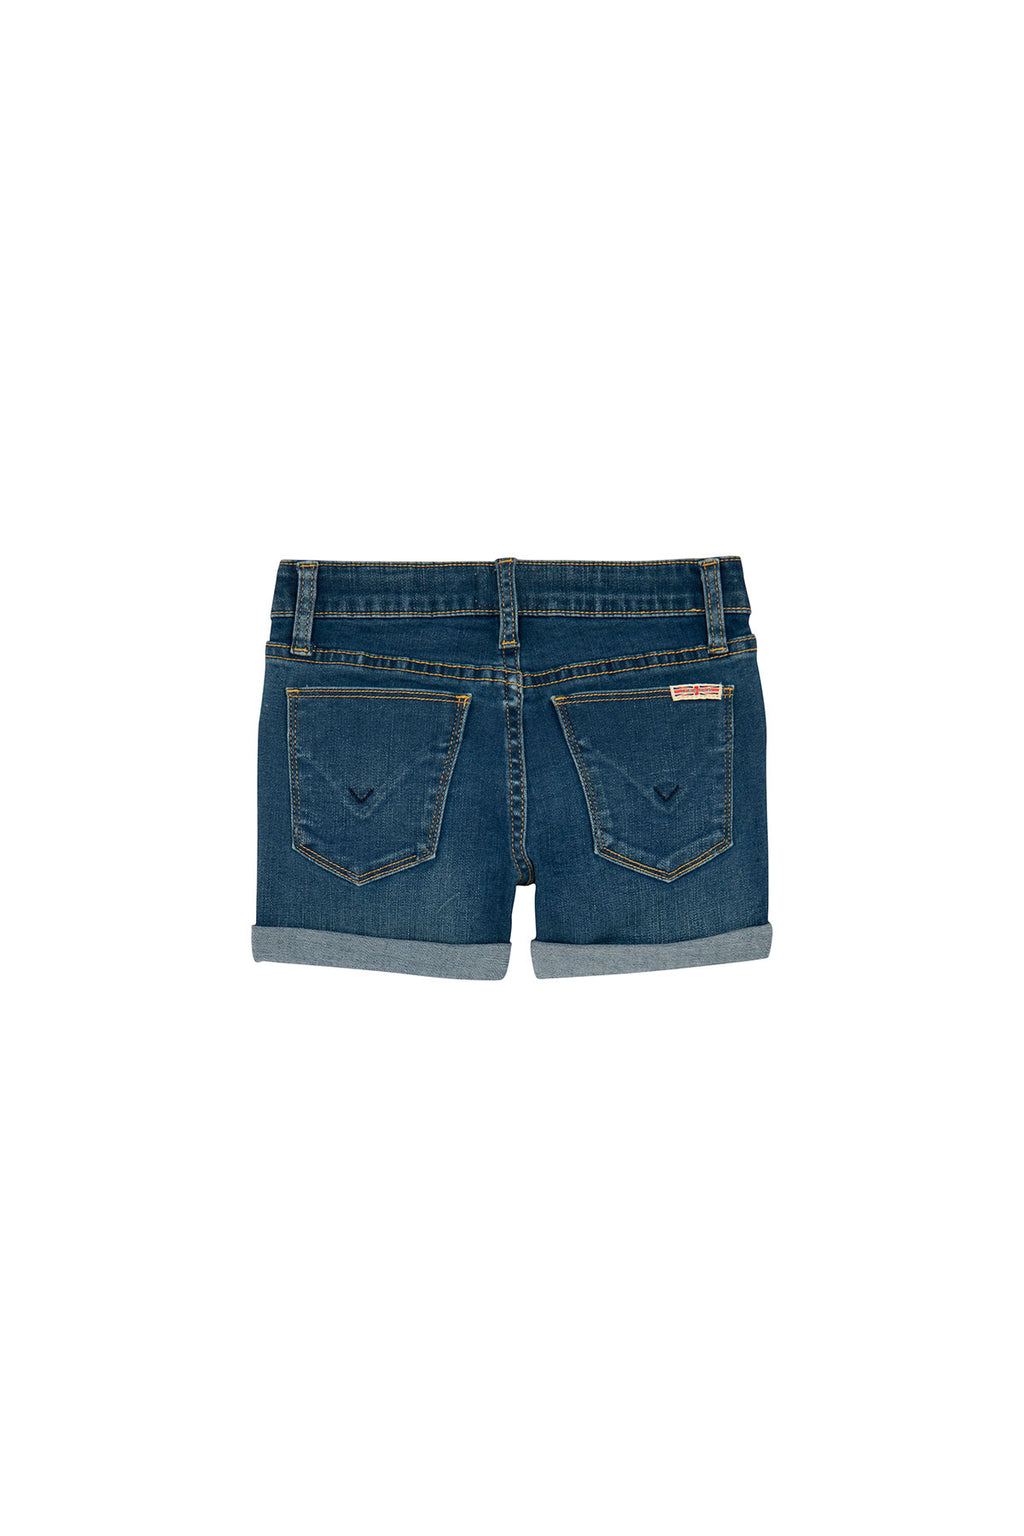 Little Girls Bria Short, Sizes 2T-6X - hudsonjeans